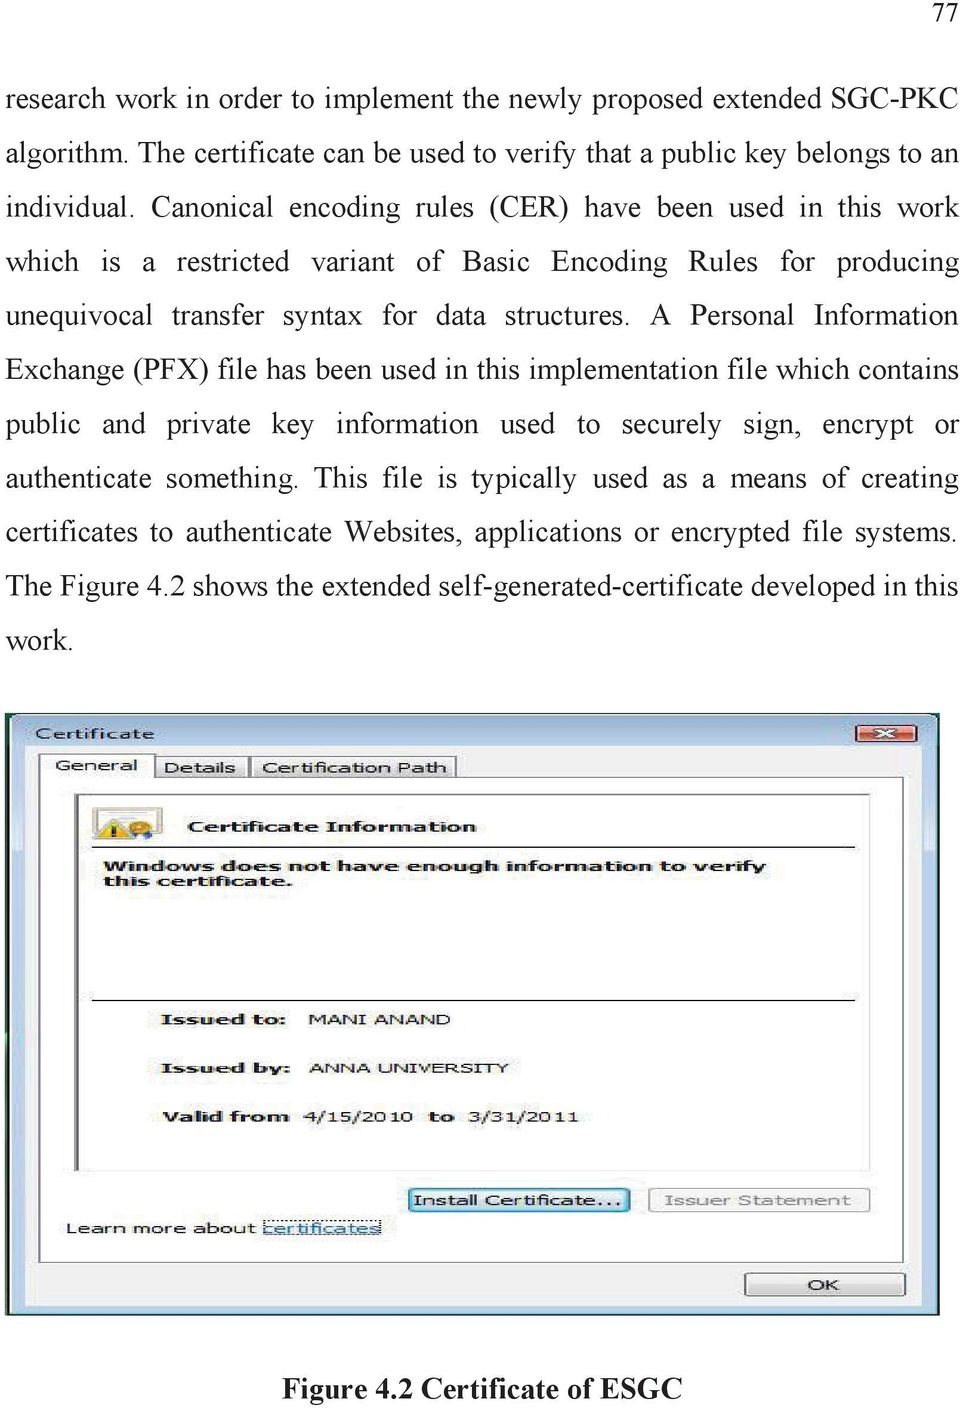 A Personal Information Exchange (PFX) file has been used in this implementation file which contains public and private key information used to securely sign, encrypt or authenticate something.